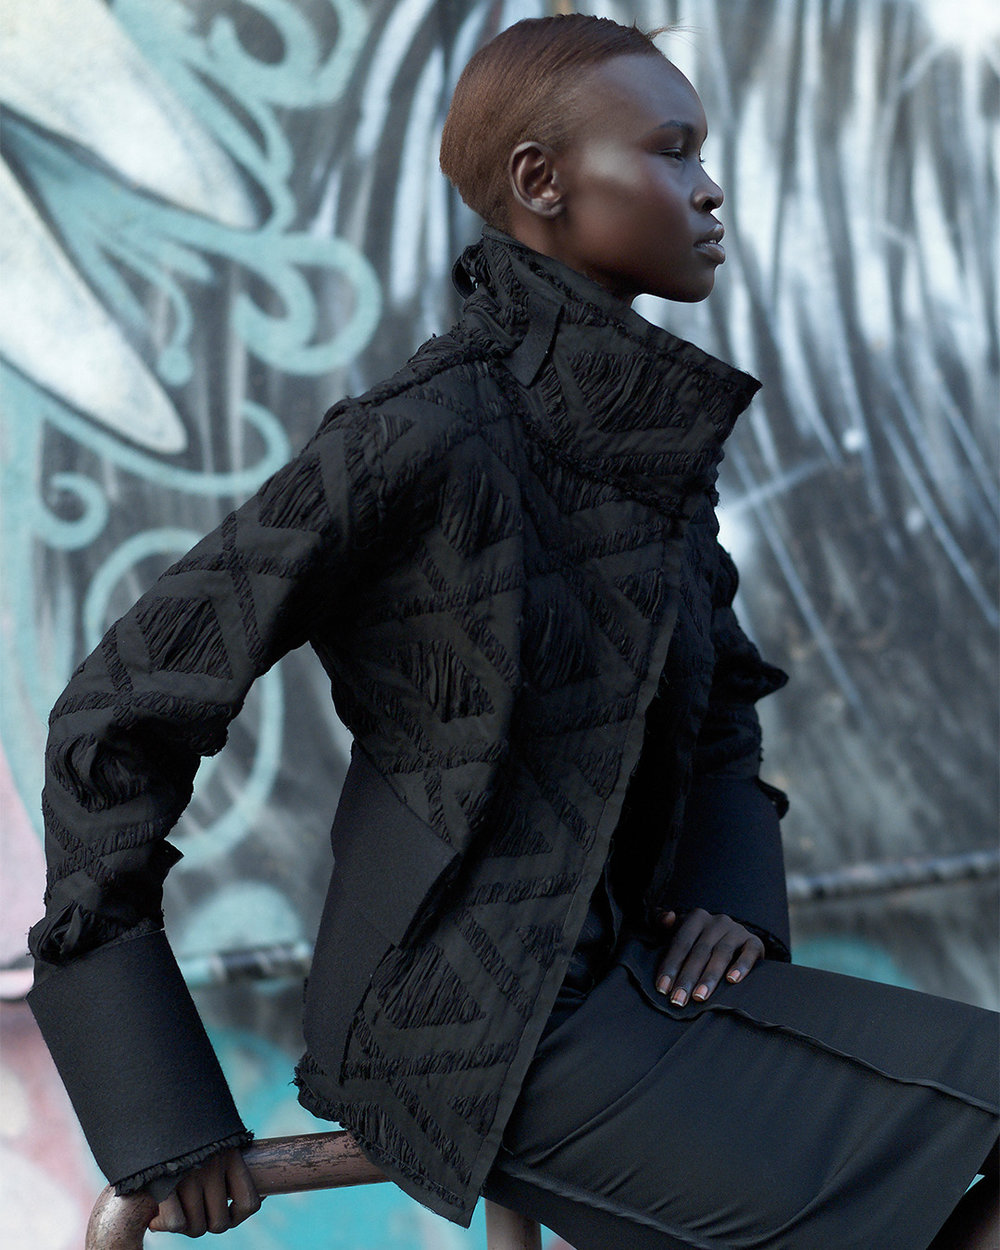 Location fashion shoot of Alek Wek by Patrik Andersson